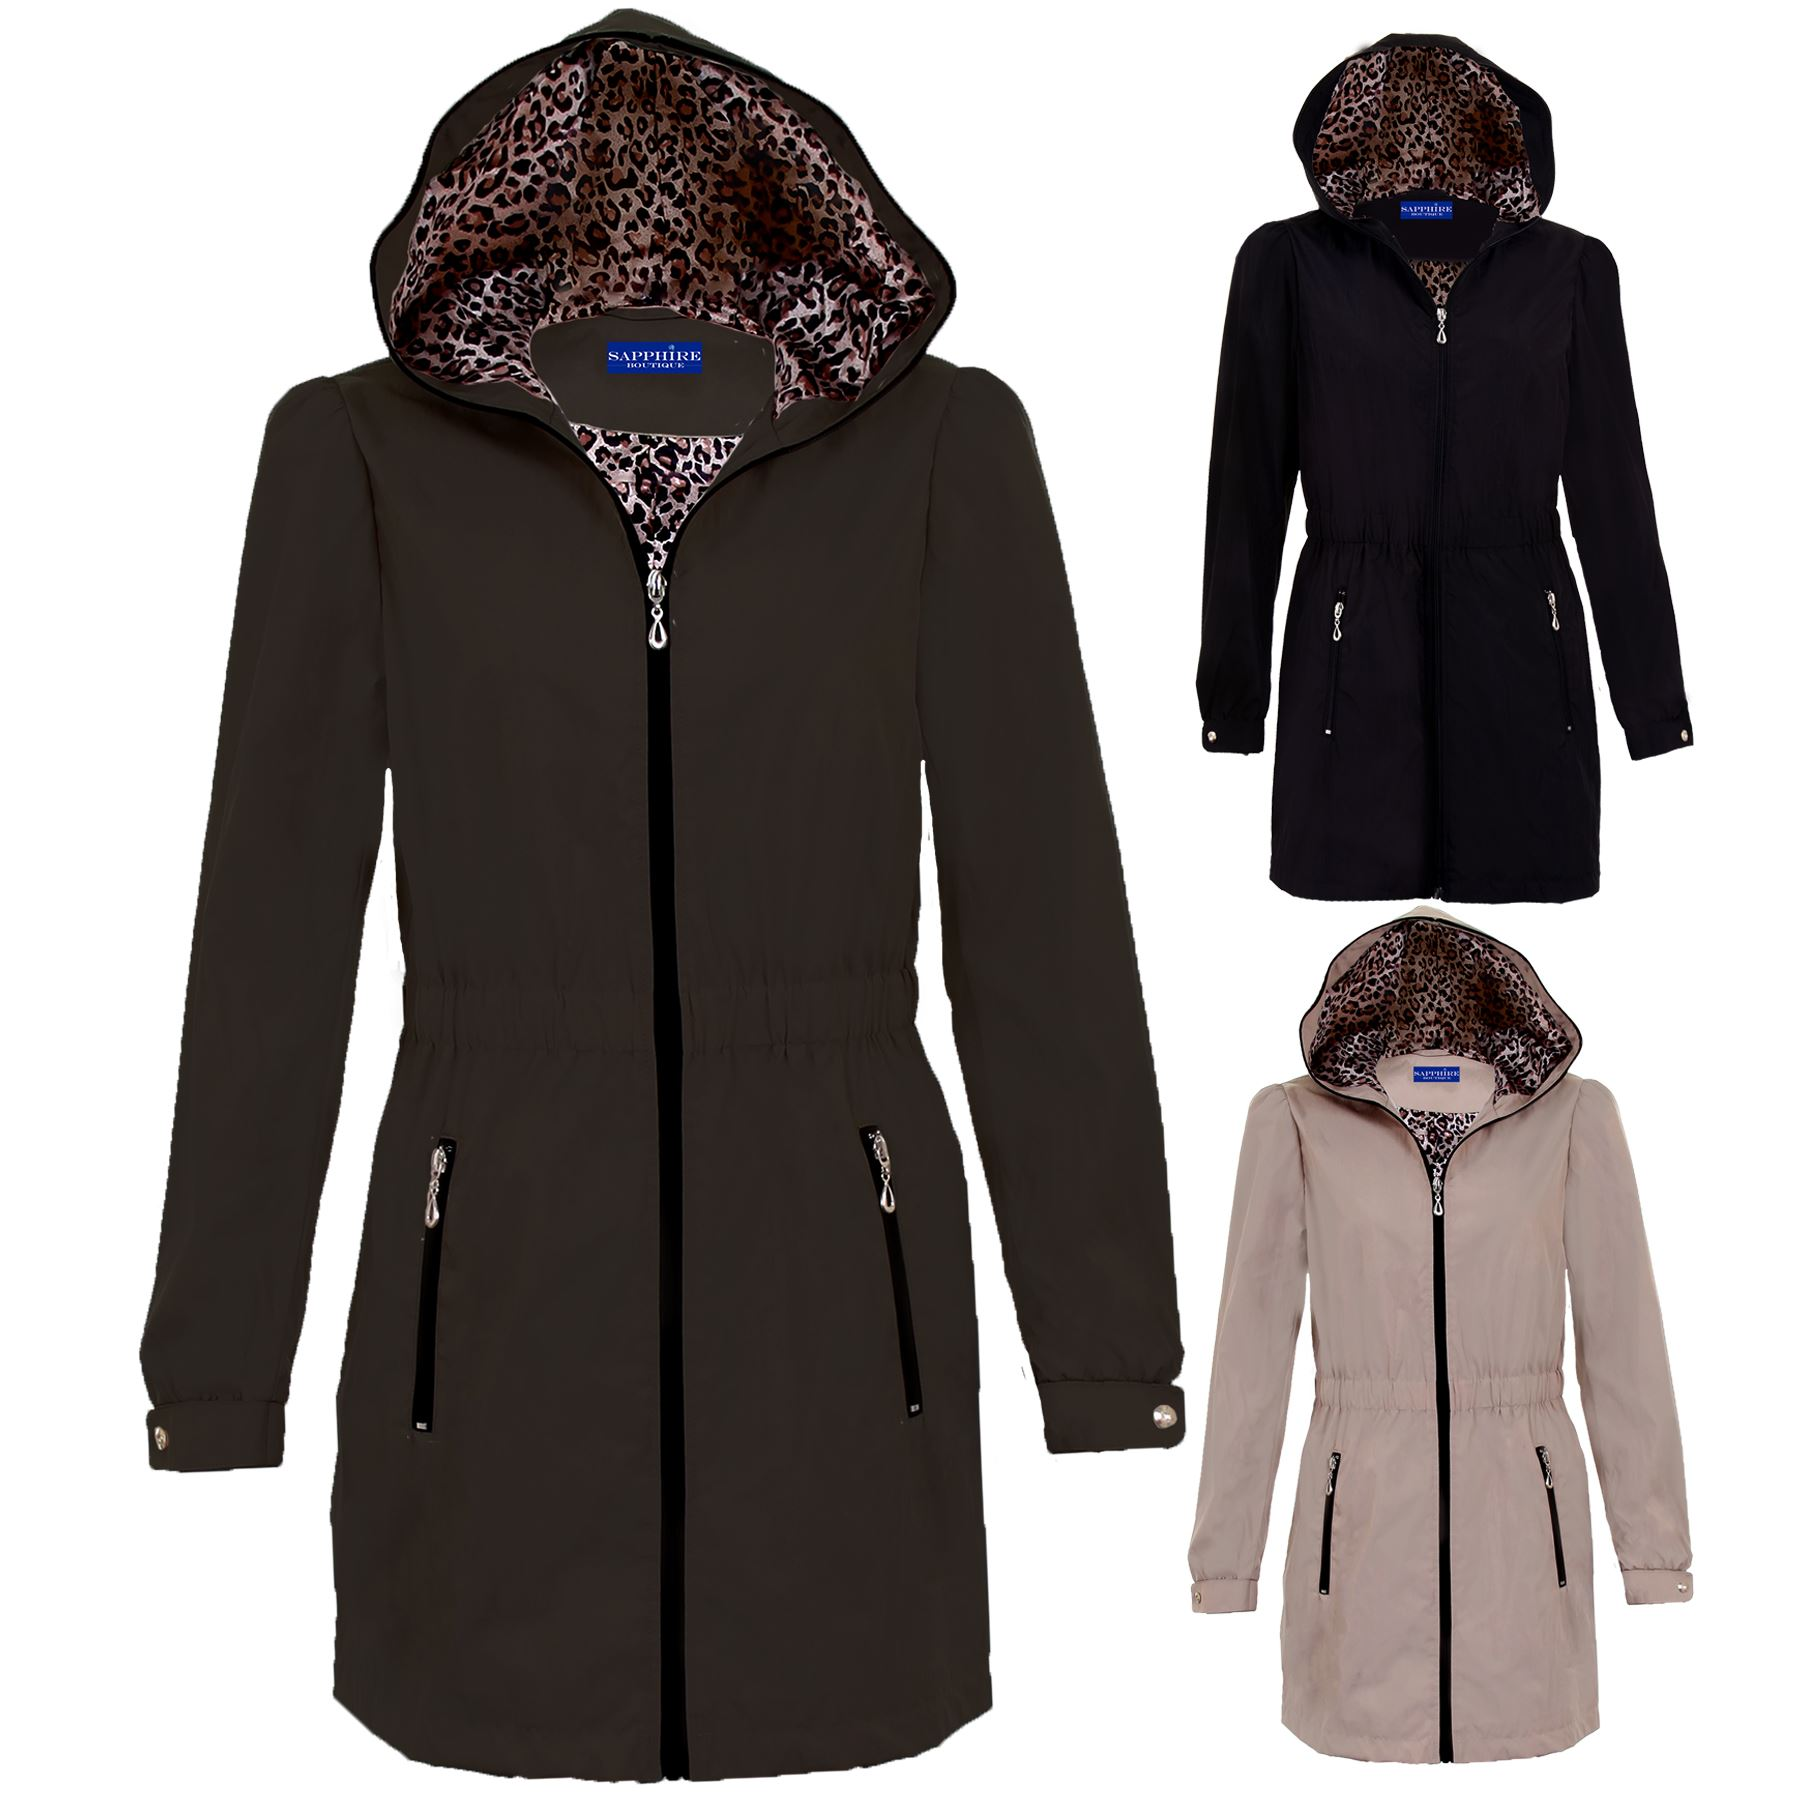 Ladies Hooded Shower Proof Lined Women/'s Casual Lightweight Raincoat Jacket